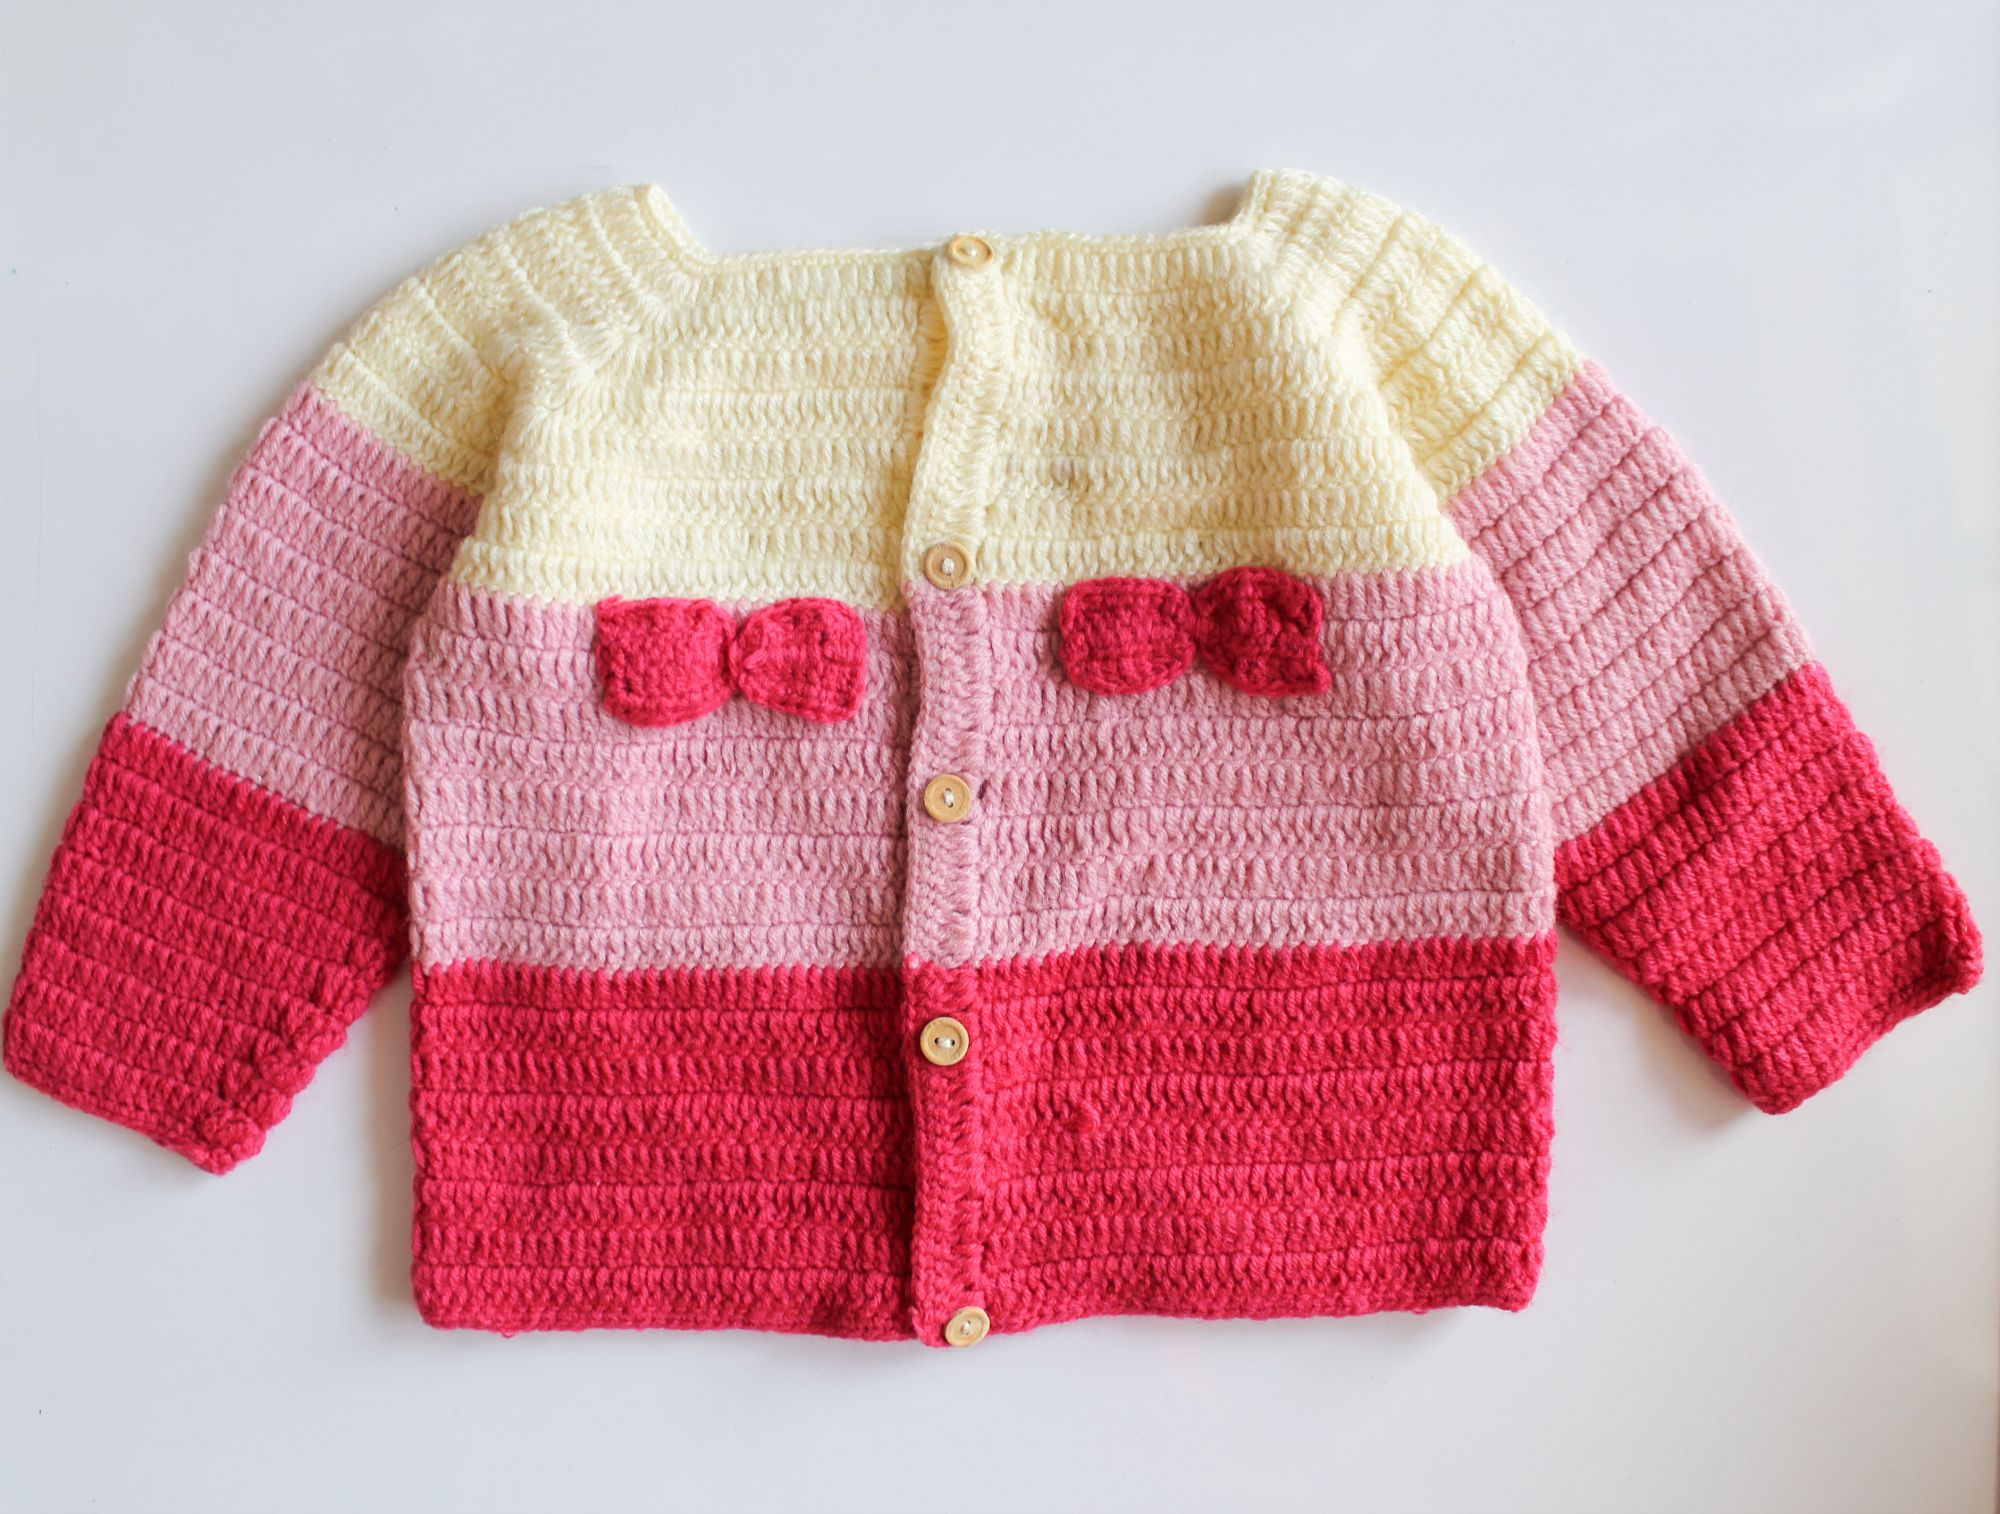 Woonie Handmade Pink Bow Sweater for Kids